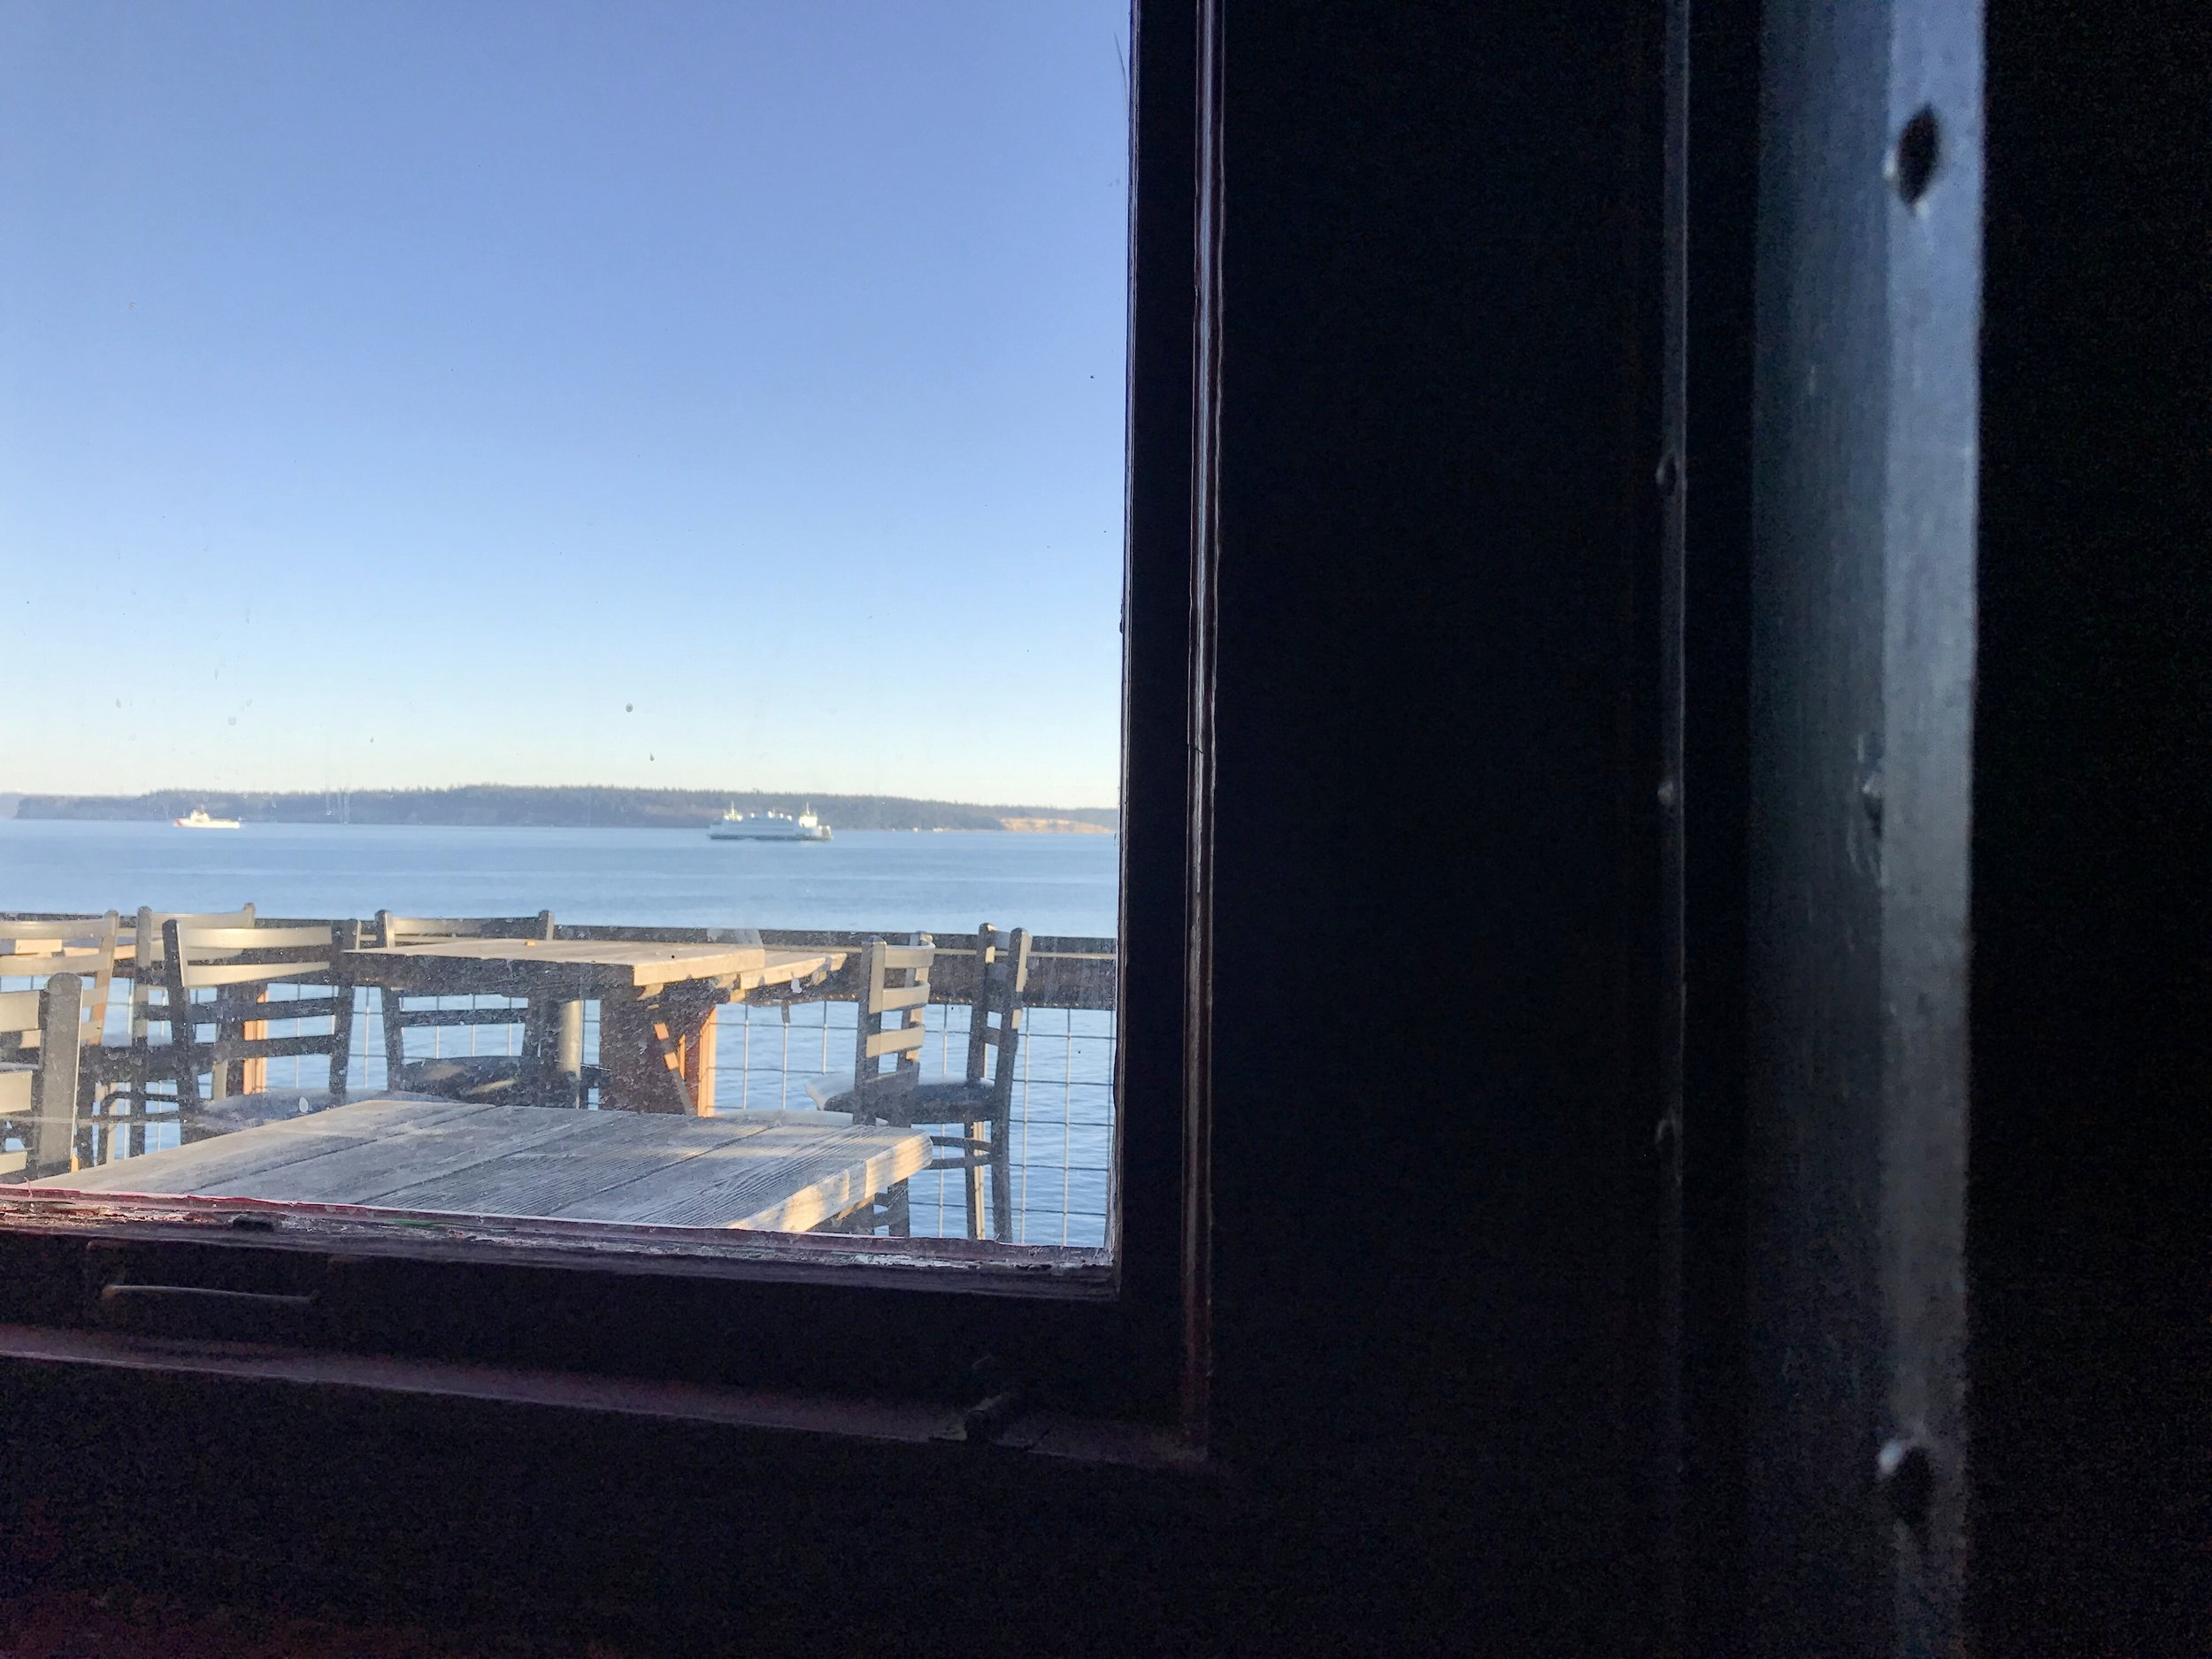 View from window at Sirens.